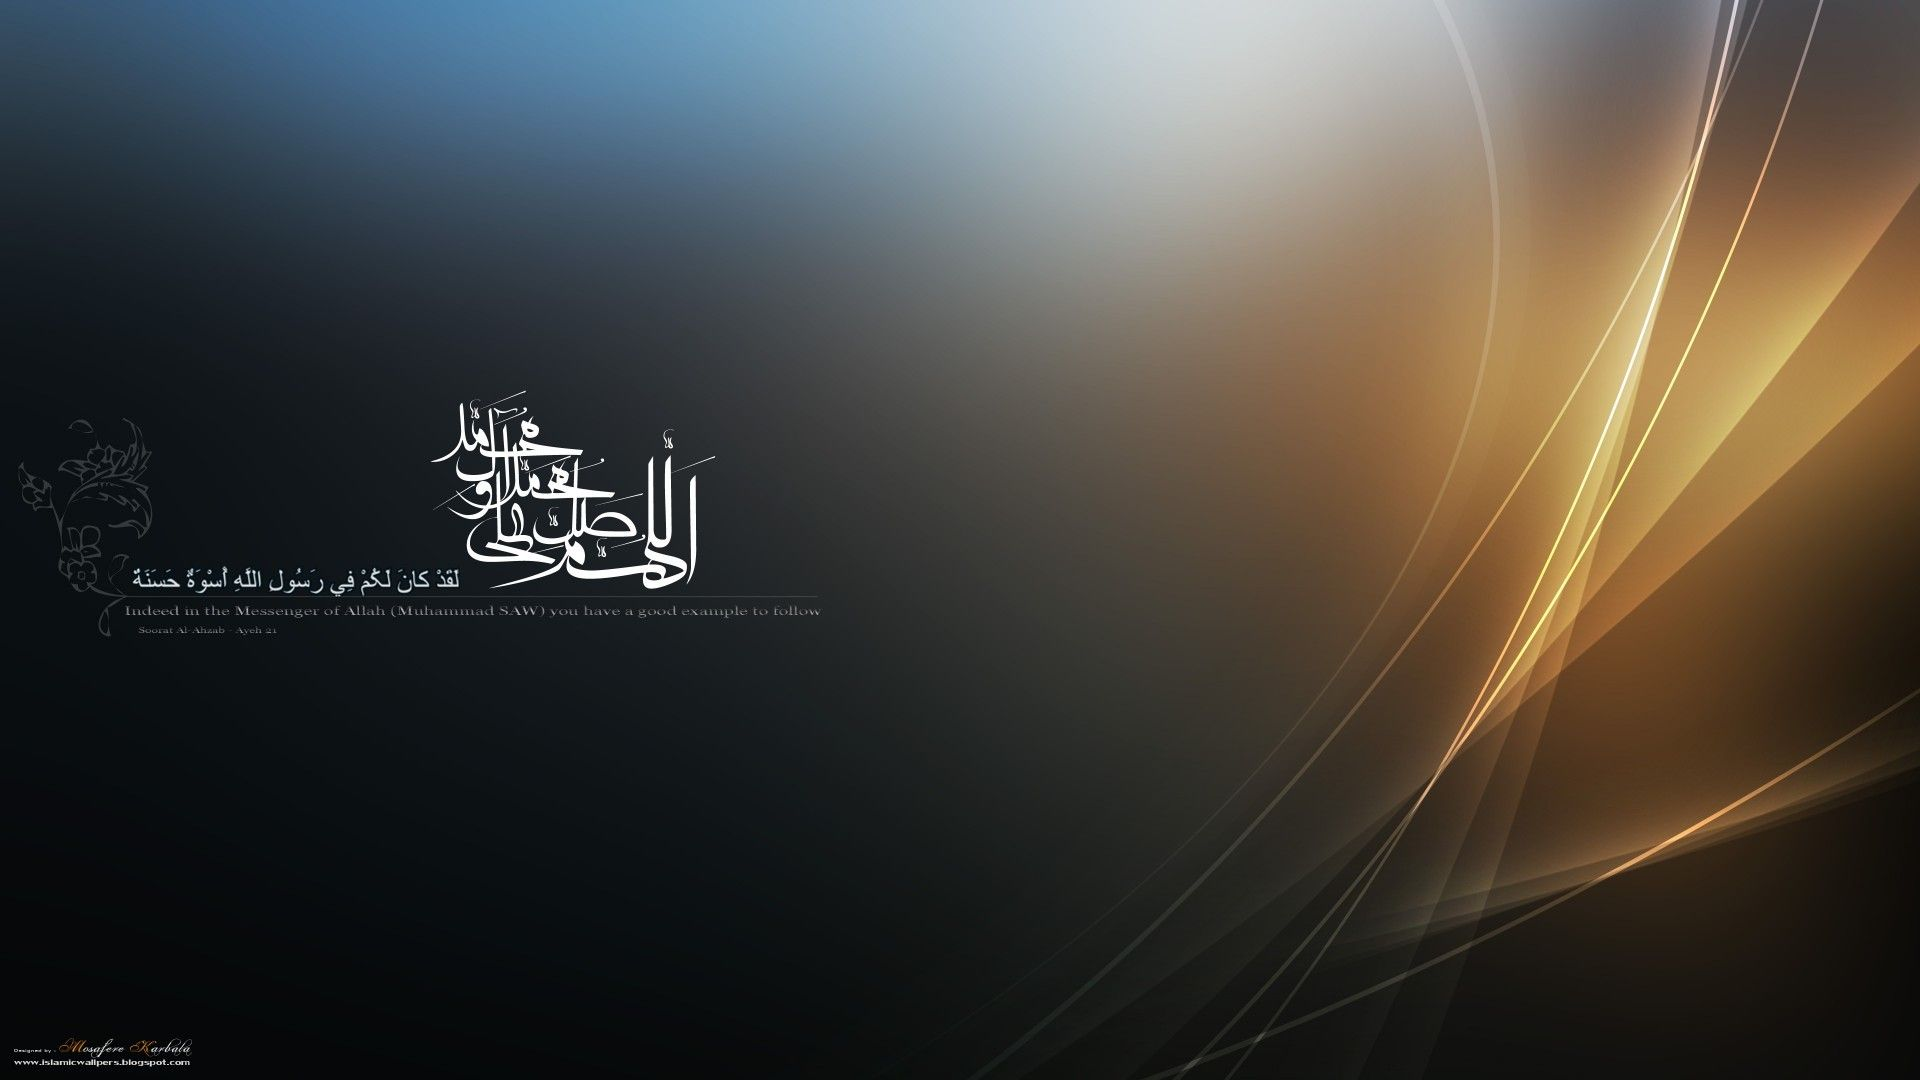 1920x1080 Download Picture Of A Great Hd Islamic Wallpaper